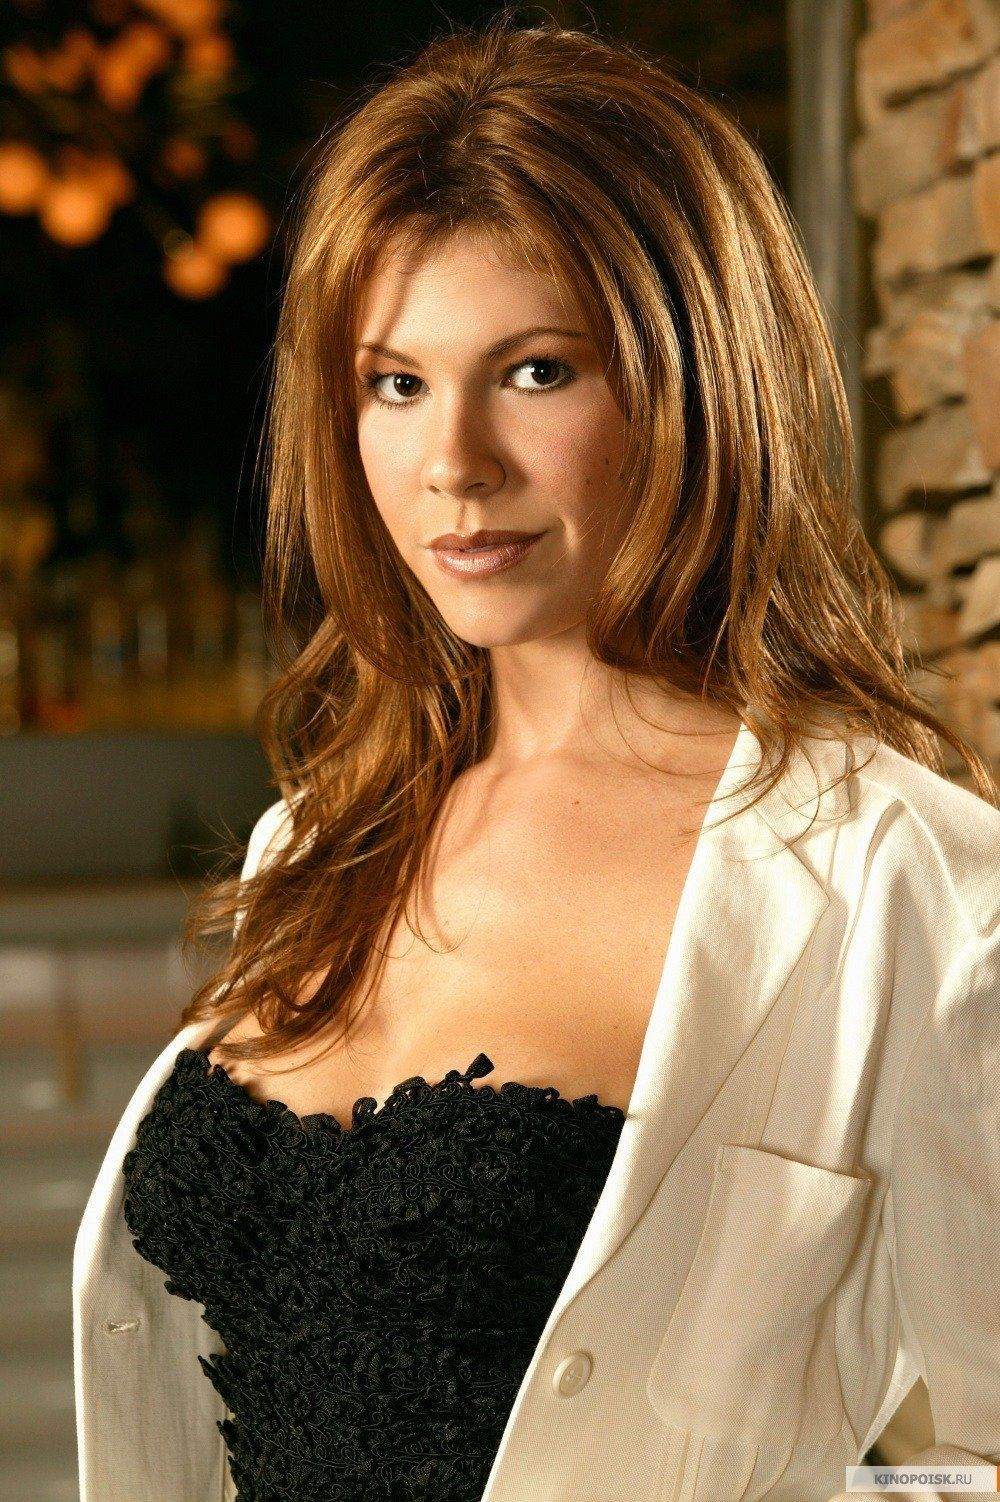 Cleavage Nikki Cox nude (25 photos), Topless, Bikini, Boobs, braless 2020